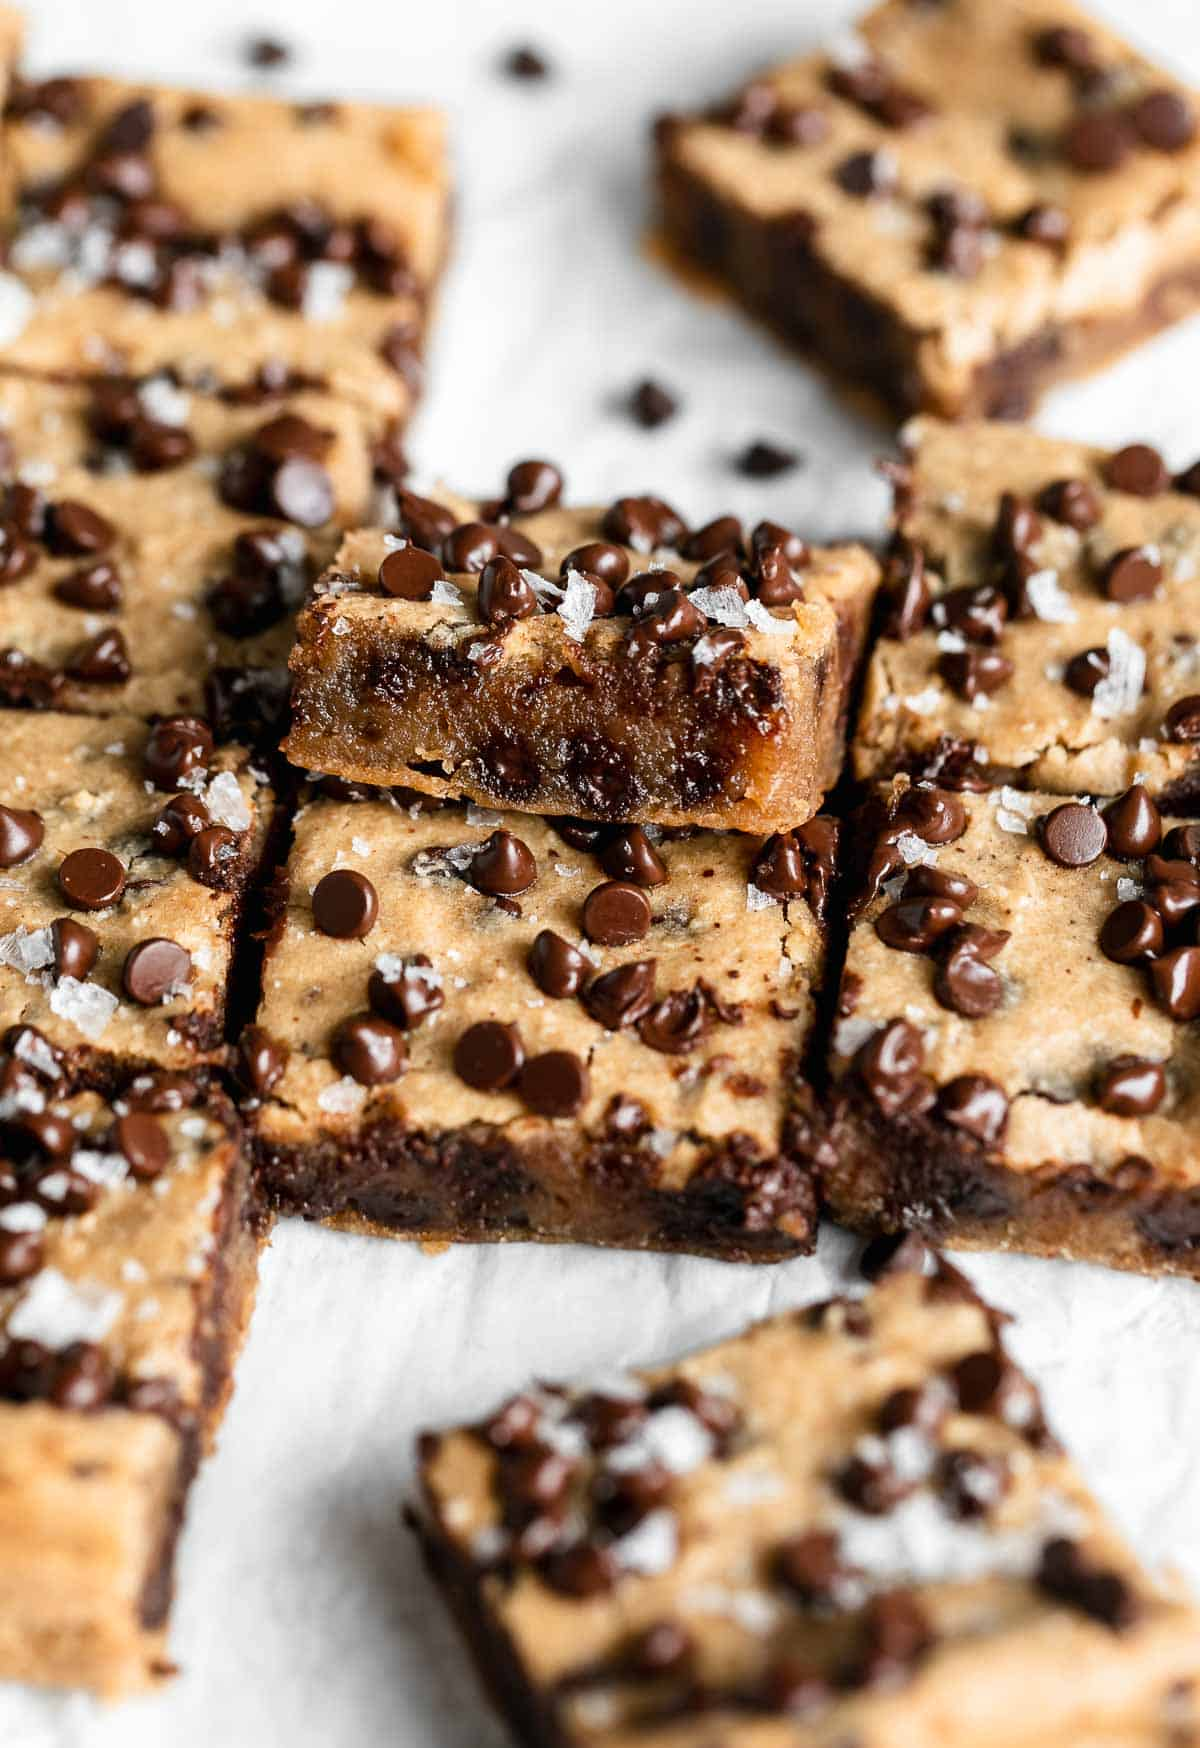 chickpea blondies on the side cut into squares to show gooey texture